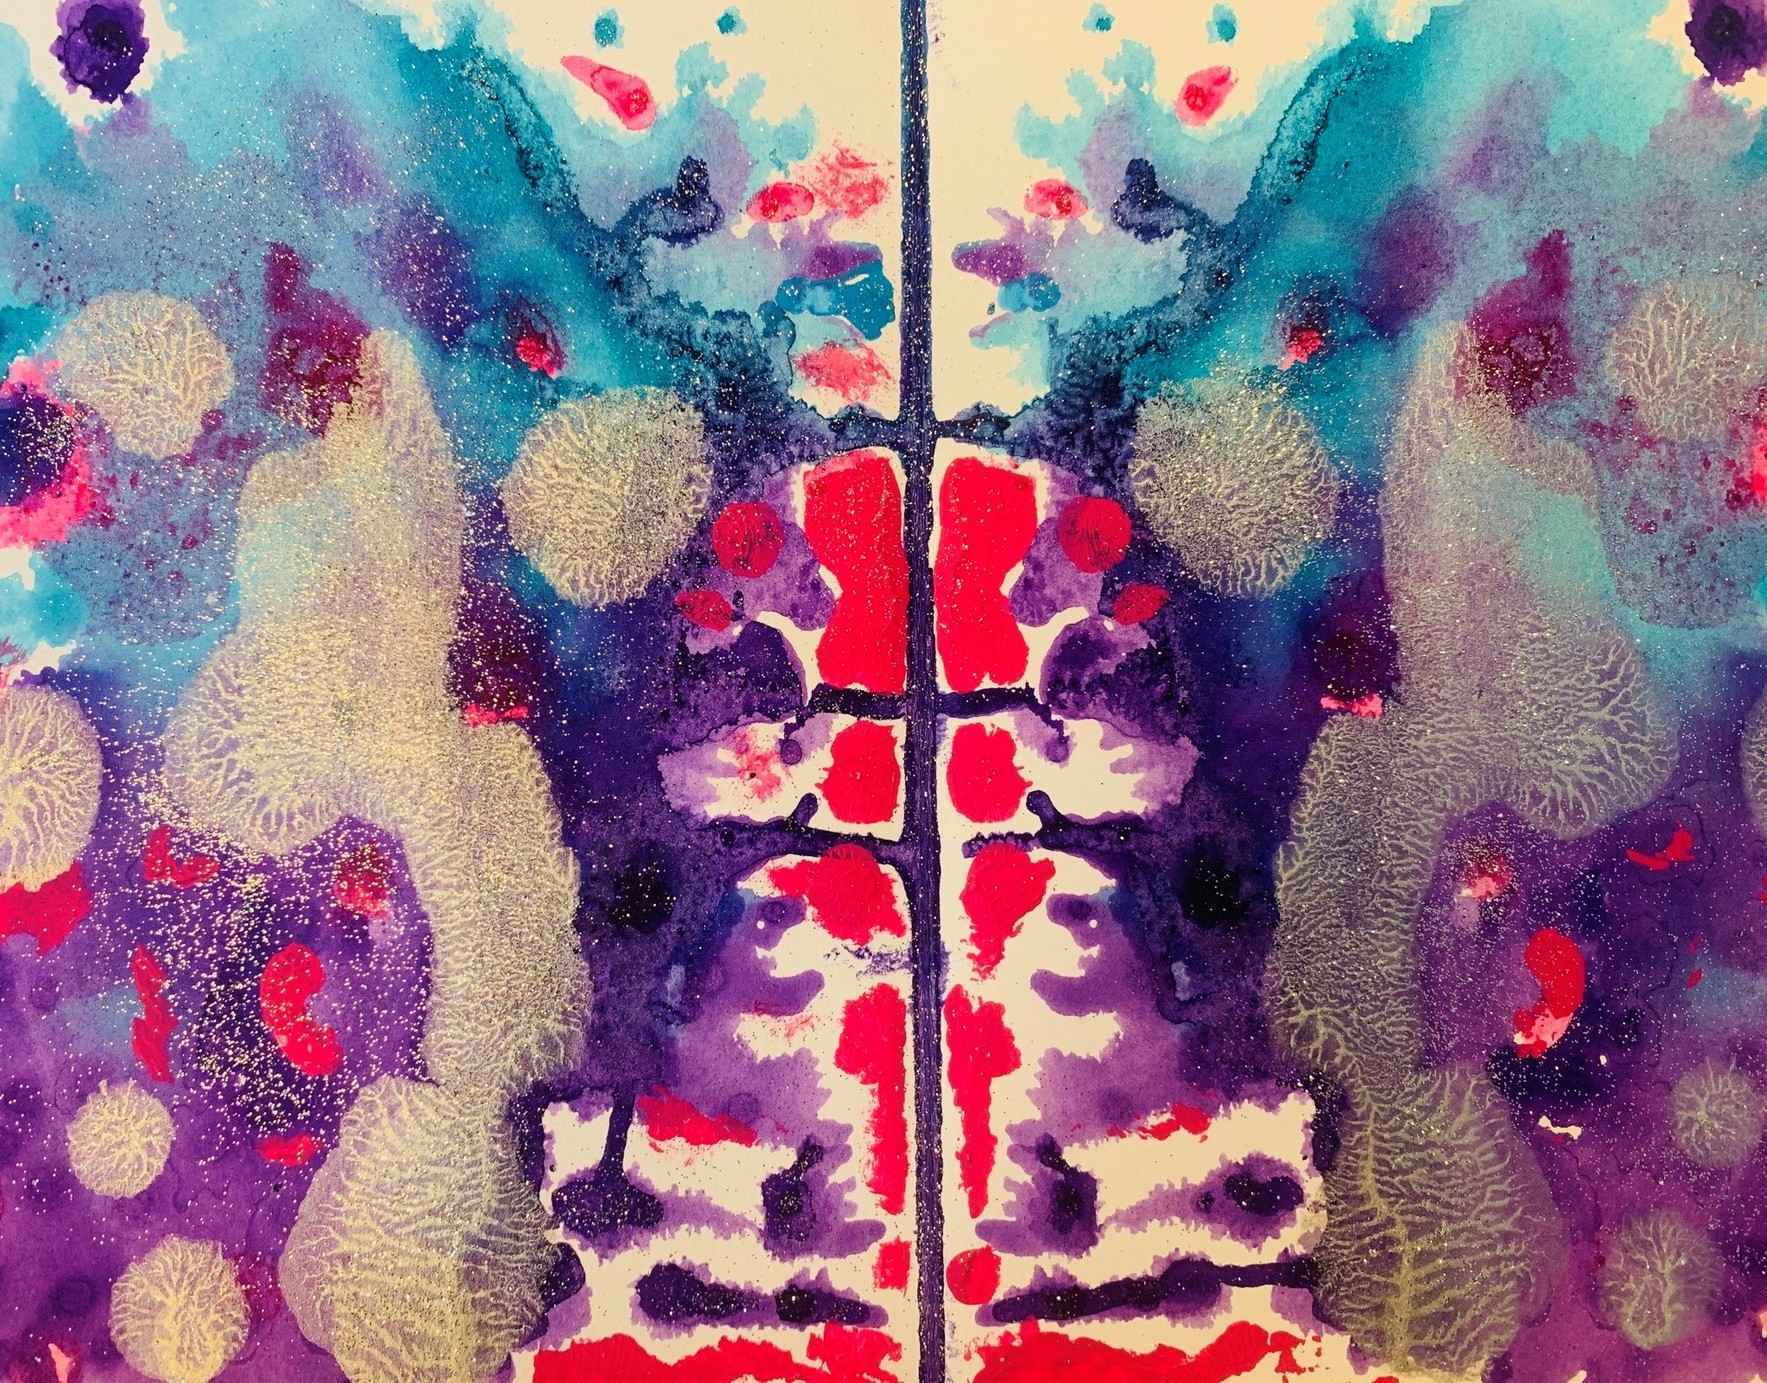 Donate to the Opening Minds Through Art Permanent Collection Gallery image